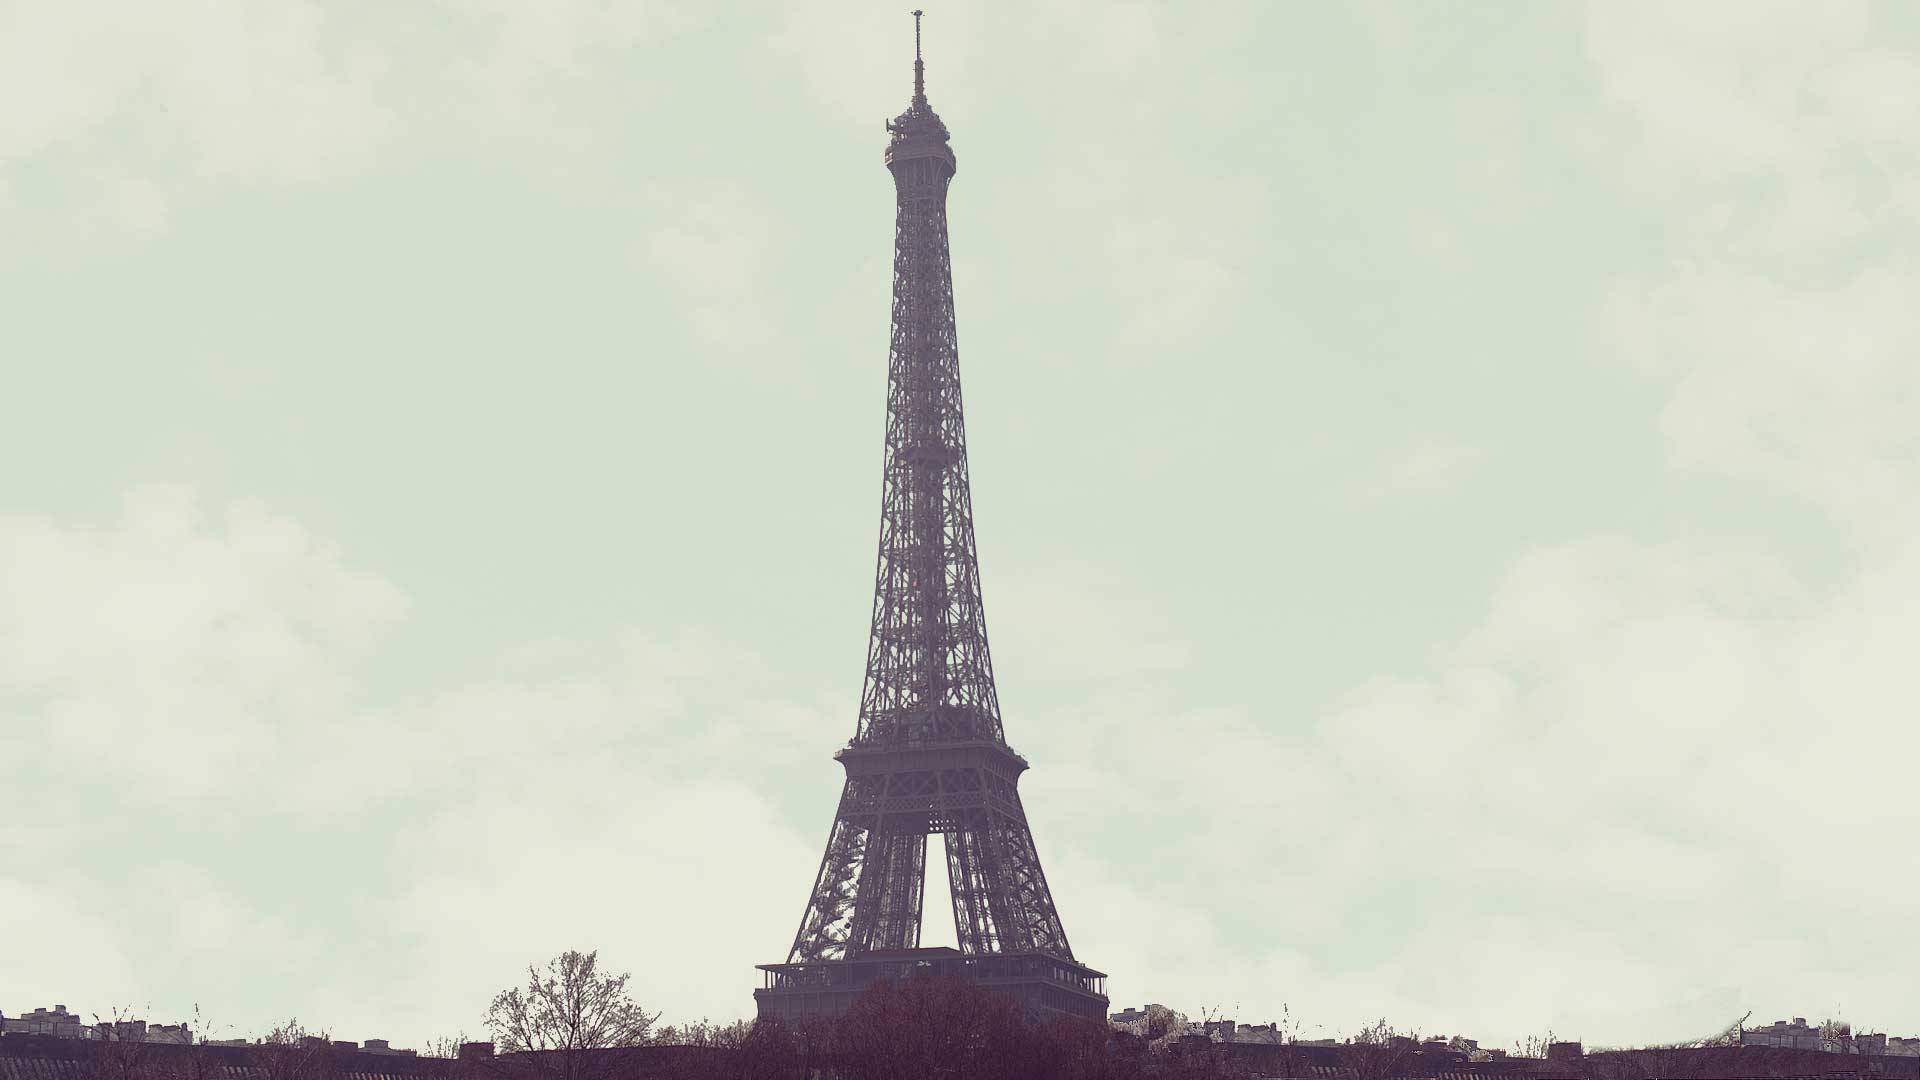 - The Eiffel Tower